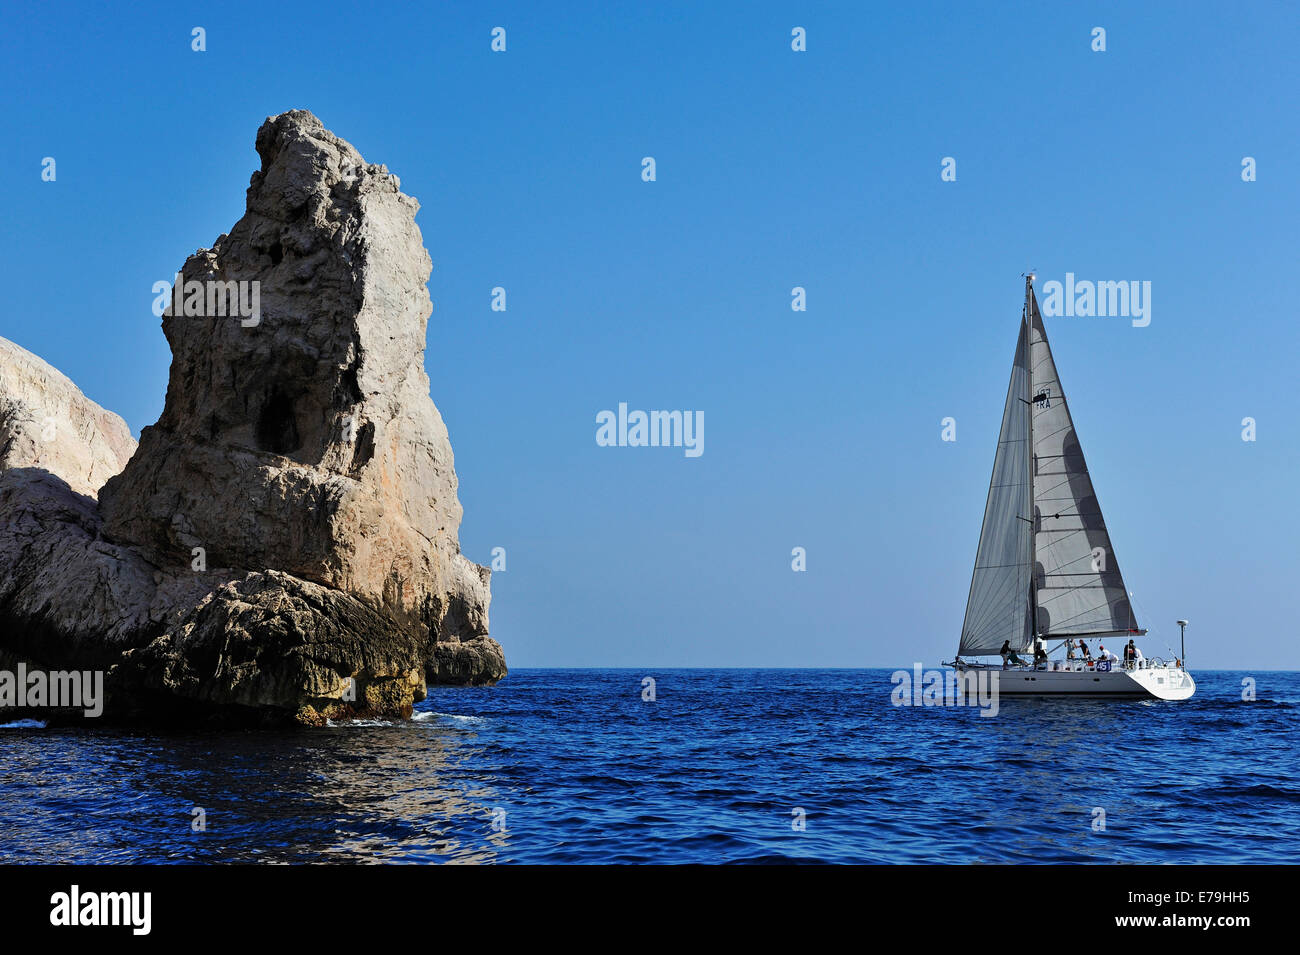 Sailboat by Riou island rocks in the Mediterranean Sea, Marseille, France, Europe - Stock Image